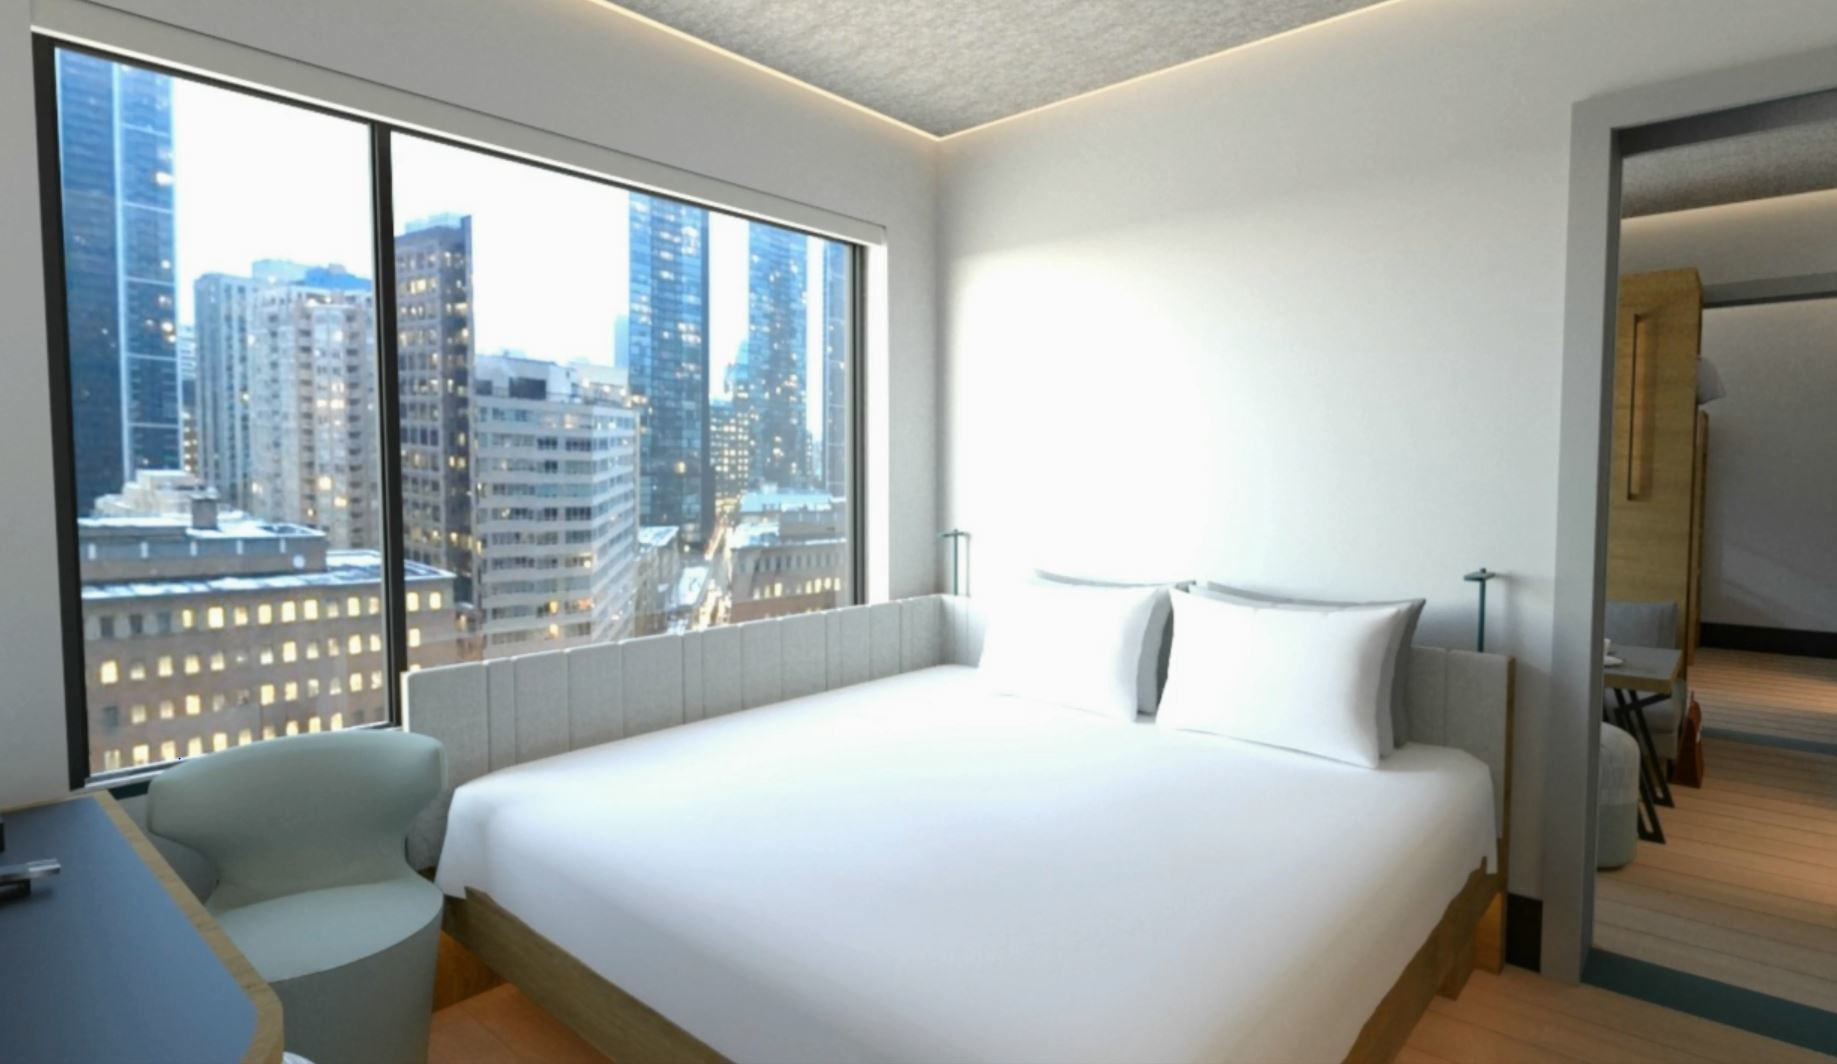 Hilton says Motto is a micro-hotel with an urban vibe in prime global locations. (Courtesy Hilton)